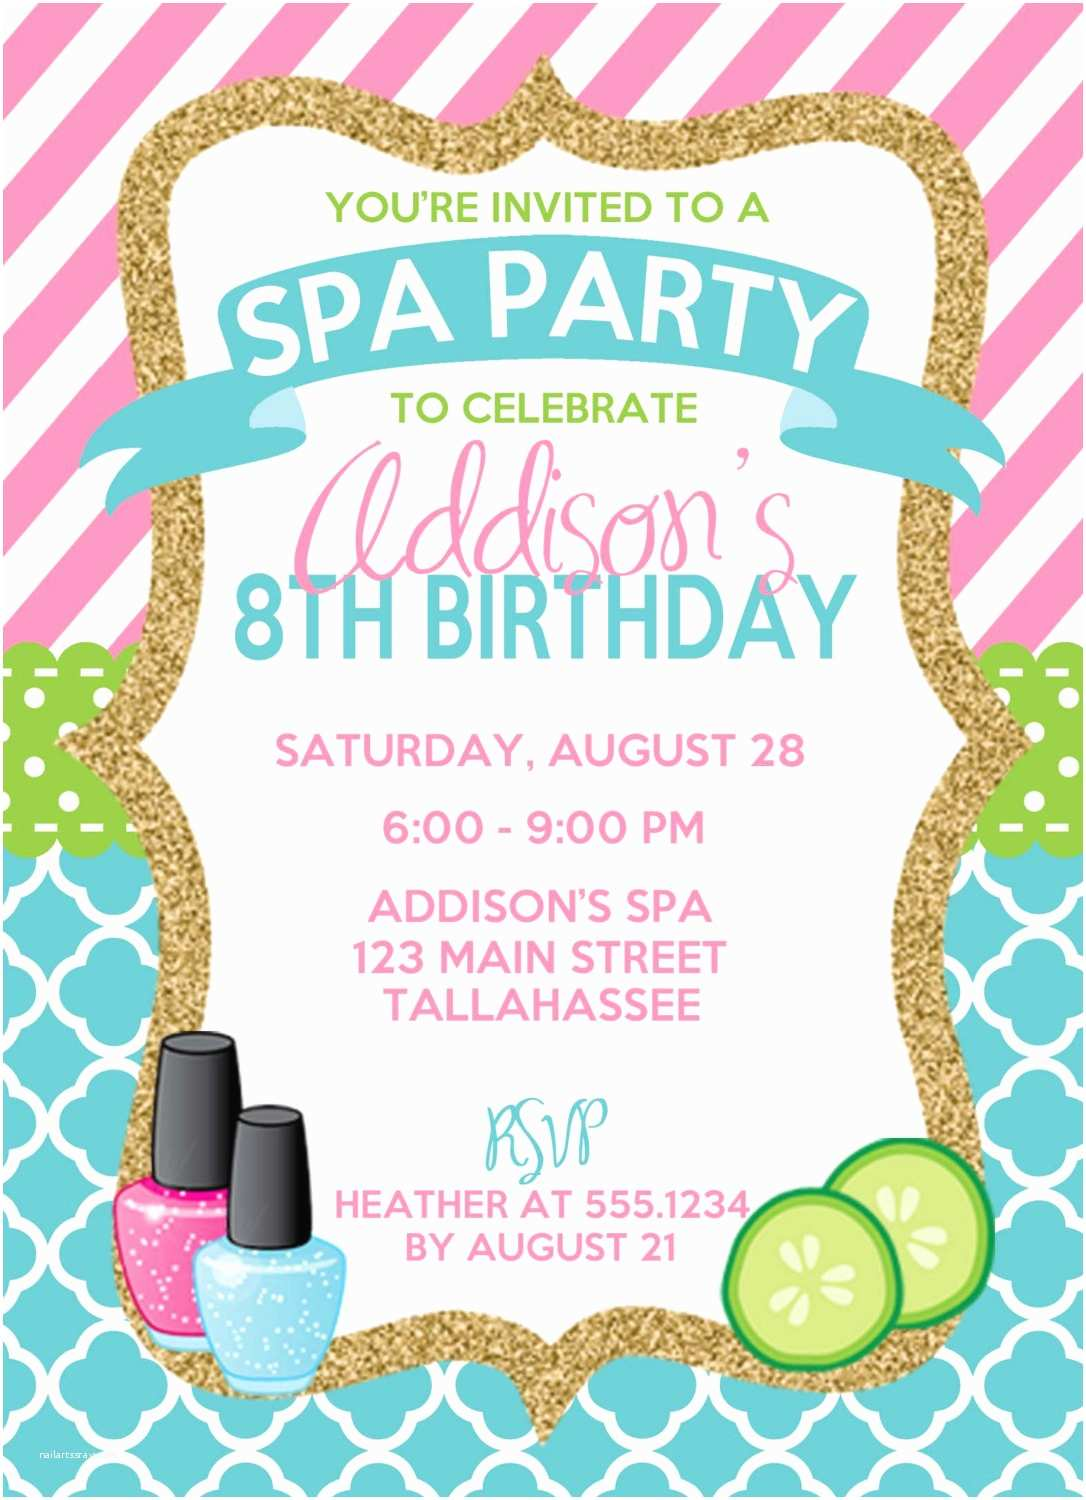 Birthday Invitations Spa Birthday Invitation Spa Party Invitation Sleepover